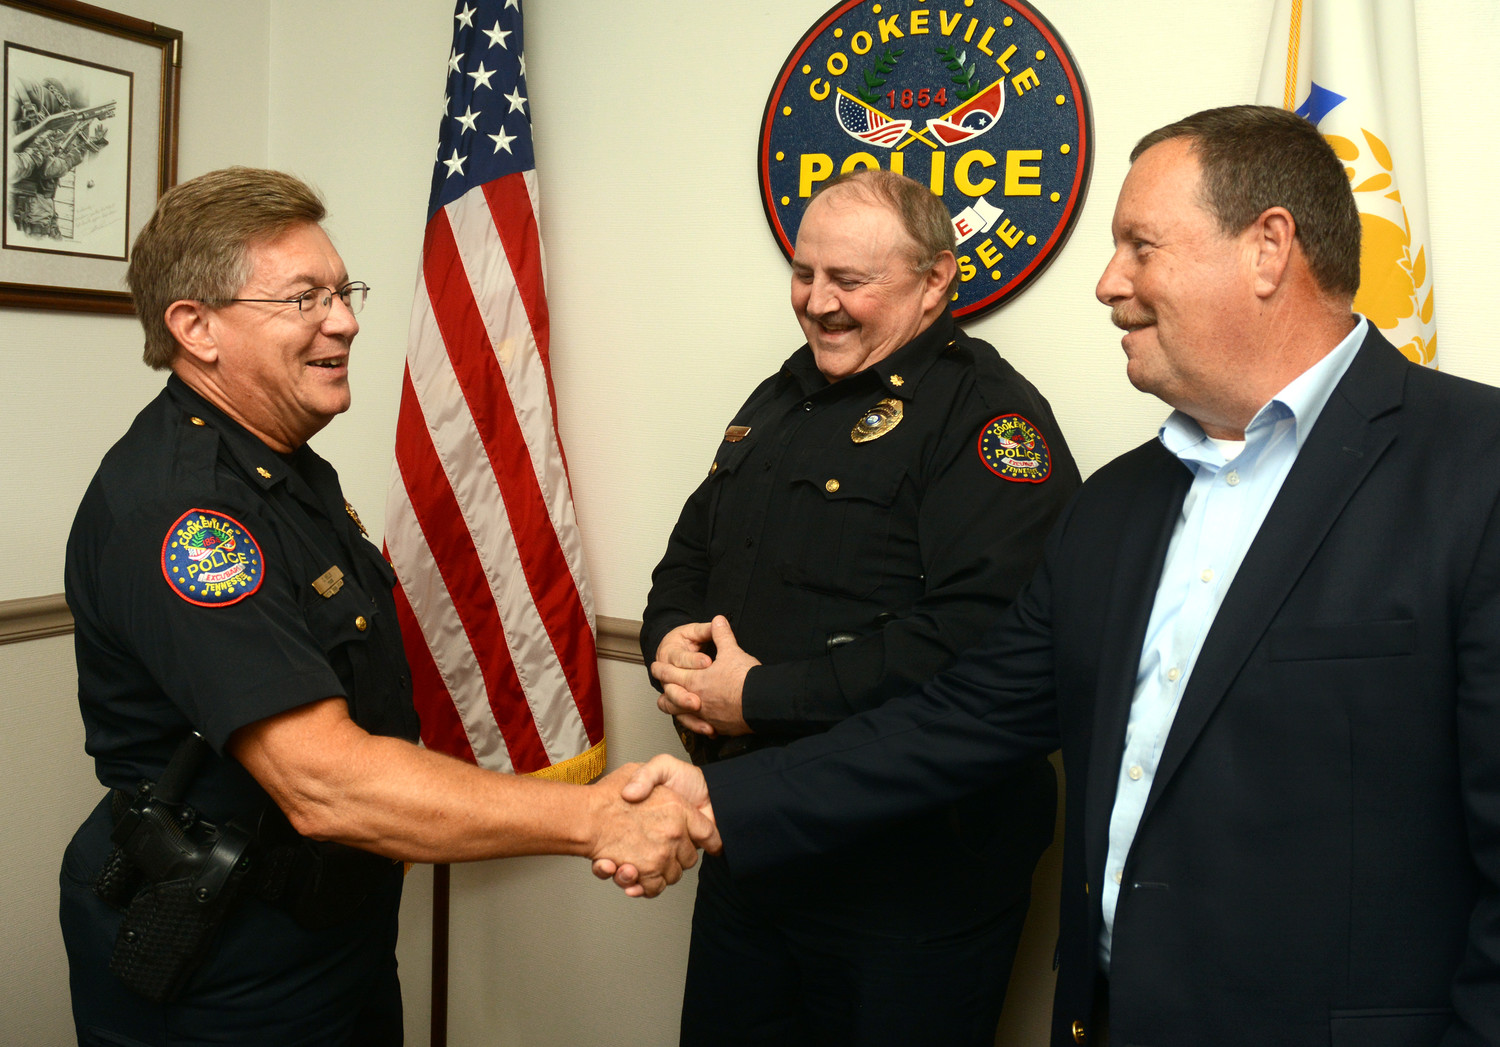 Cookeville Police Major Sells moving to city hall | Herald